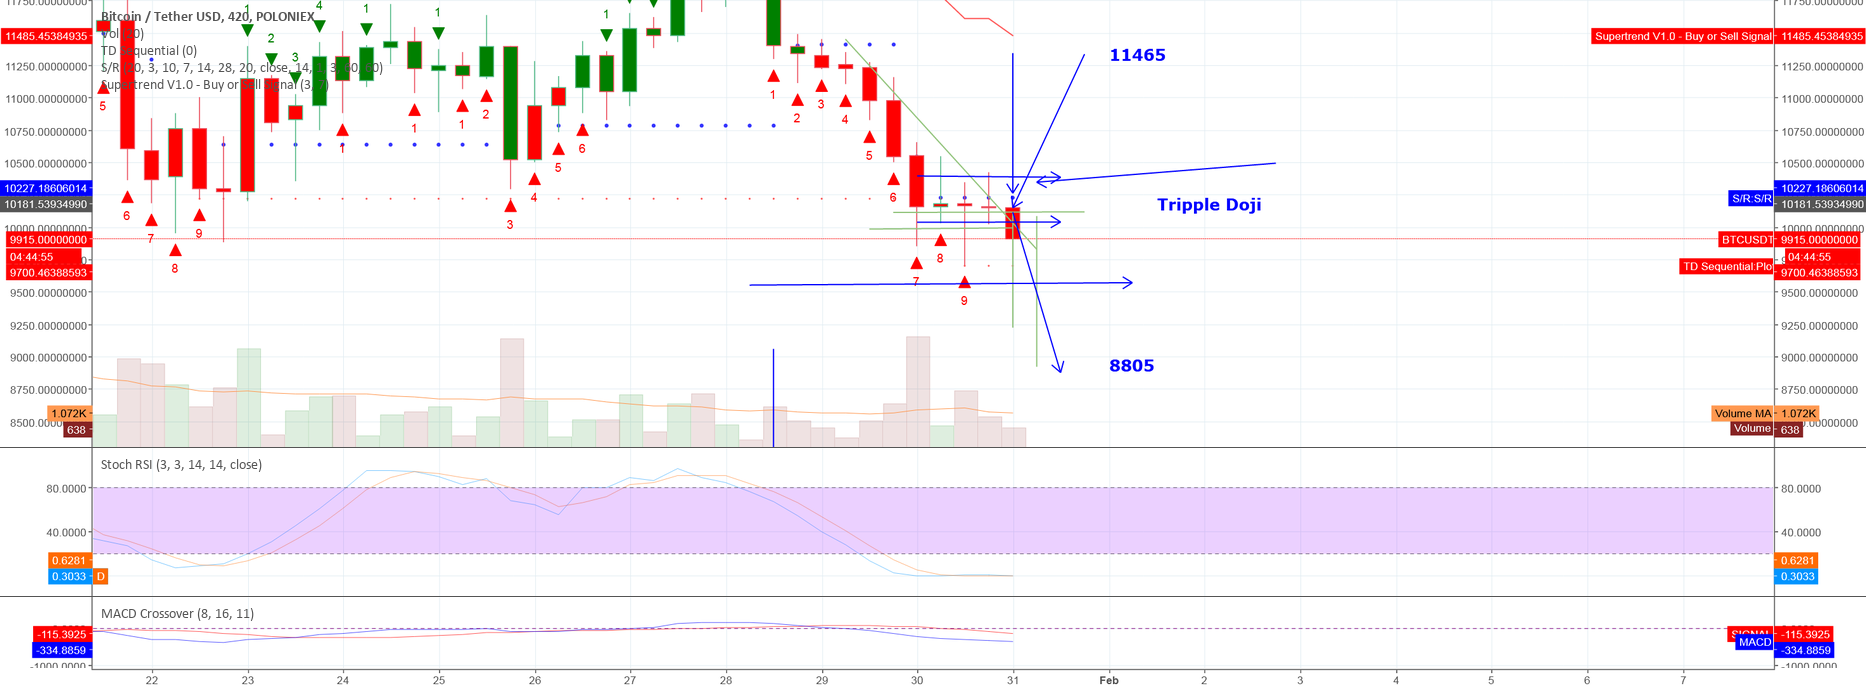 tripple Doji on7 hour candle - dropping  to 88xx before 14k